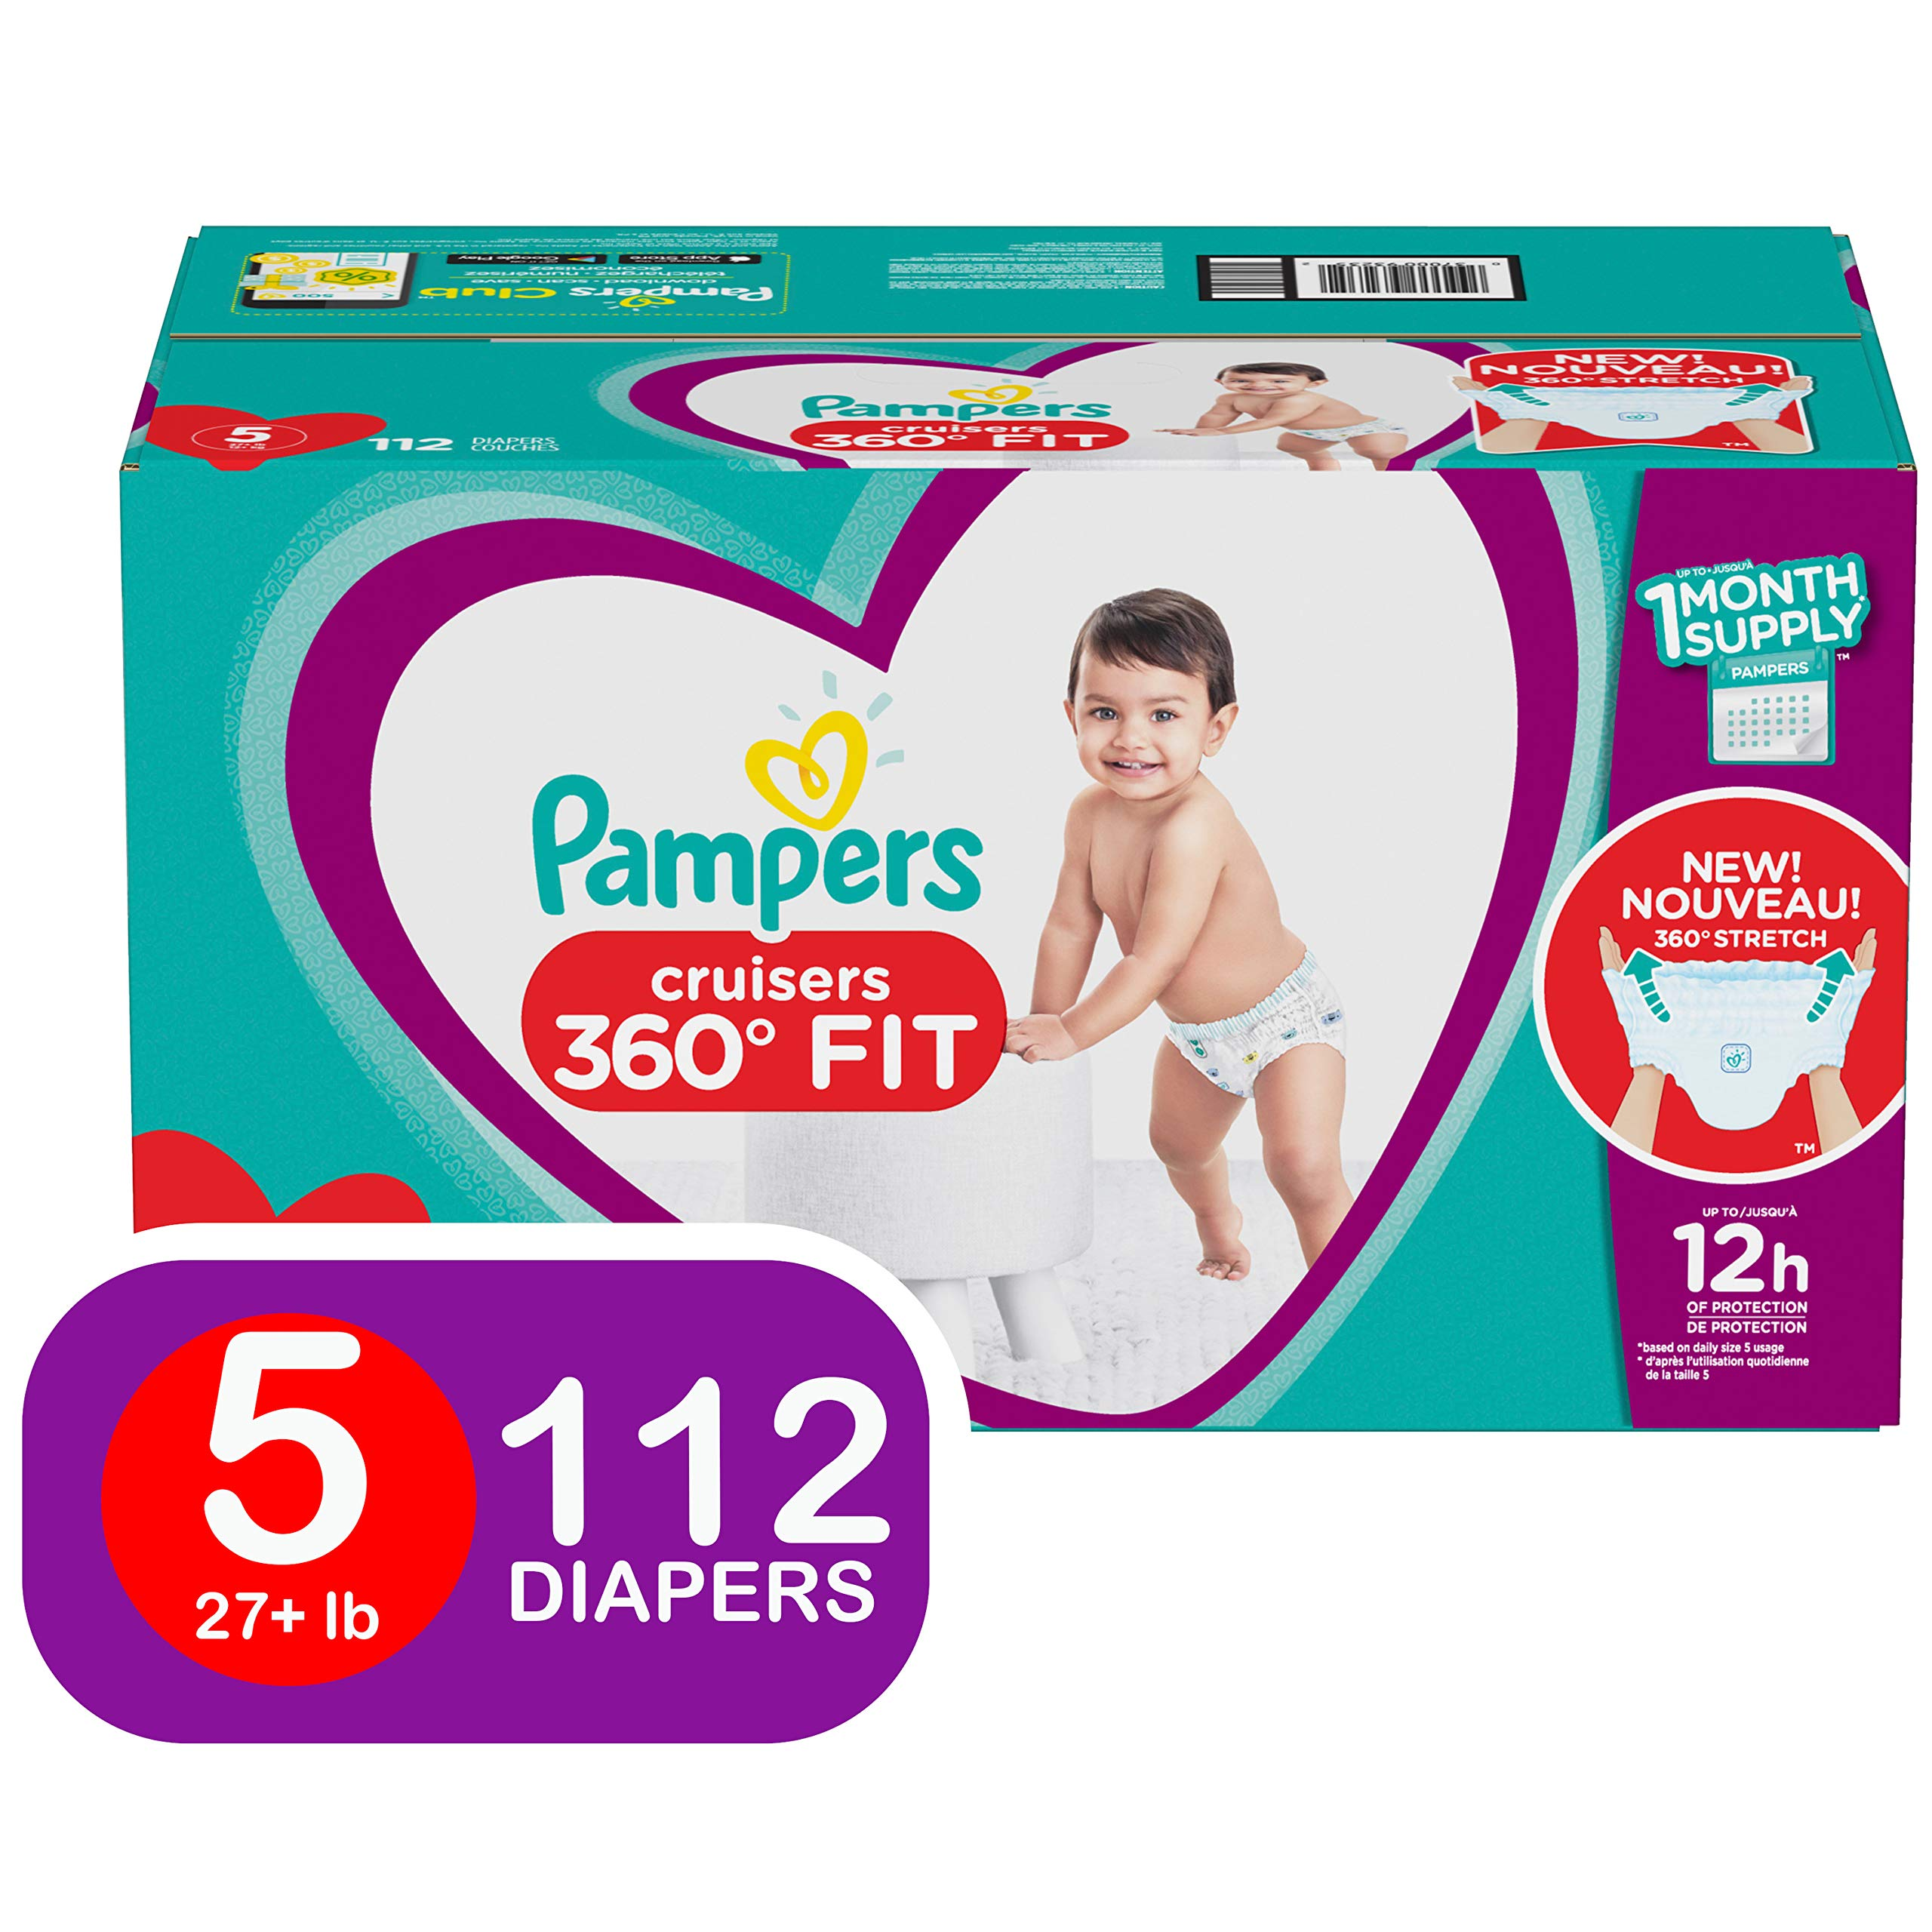 Diapers Size 5, 112 Count - Pampers Pull On Cruisers 360˚ Fit Disposable Baby Diapers with Stretchy Waistband, ONE MONTH SUPPLY by Pampers